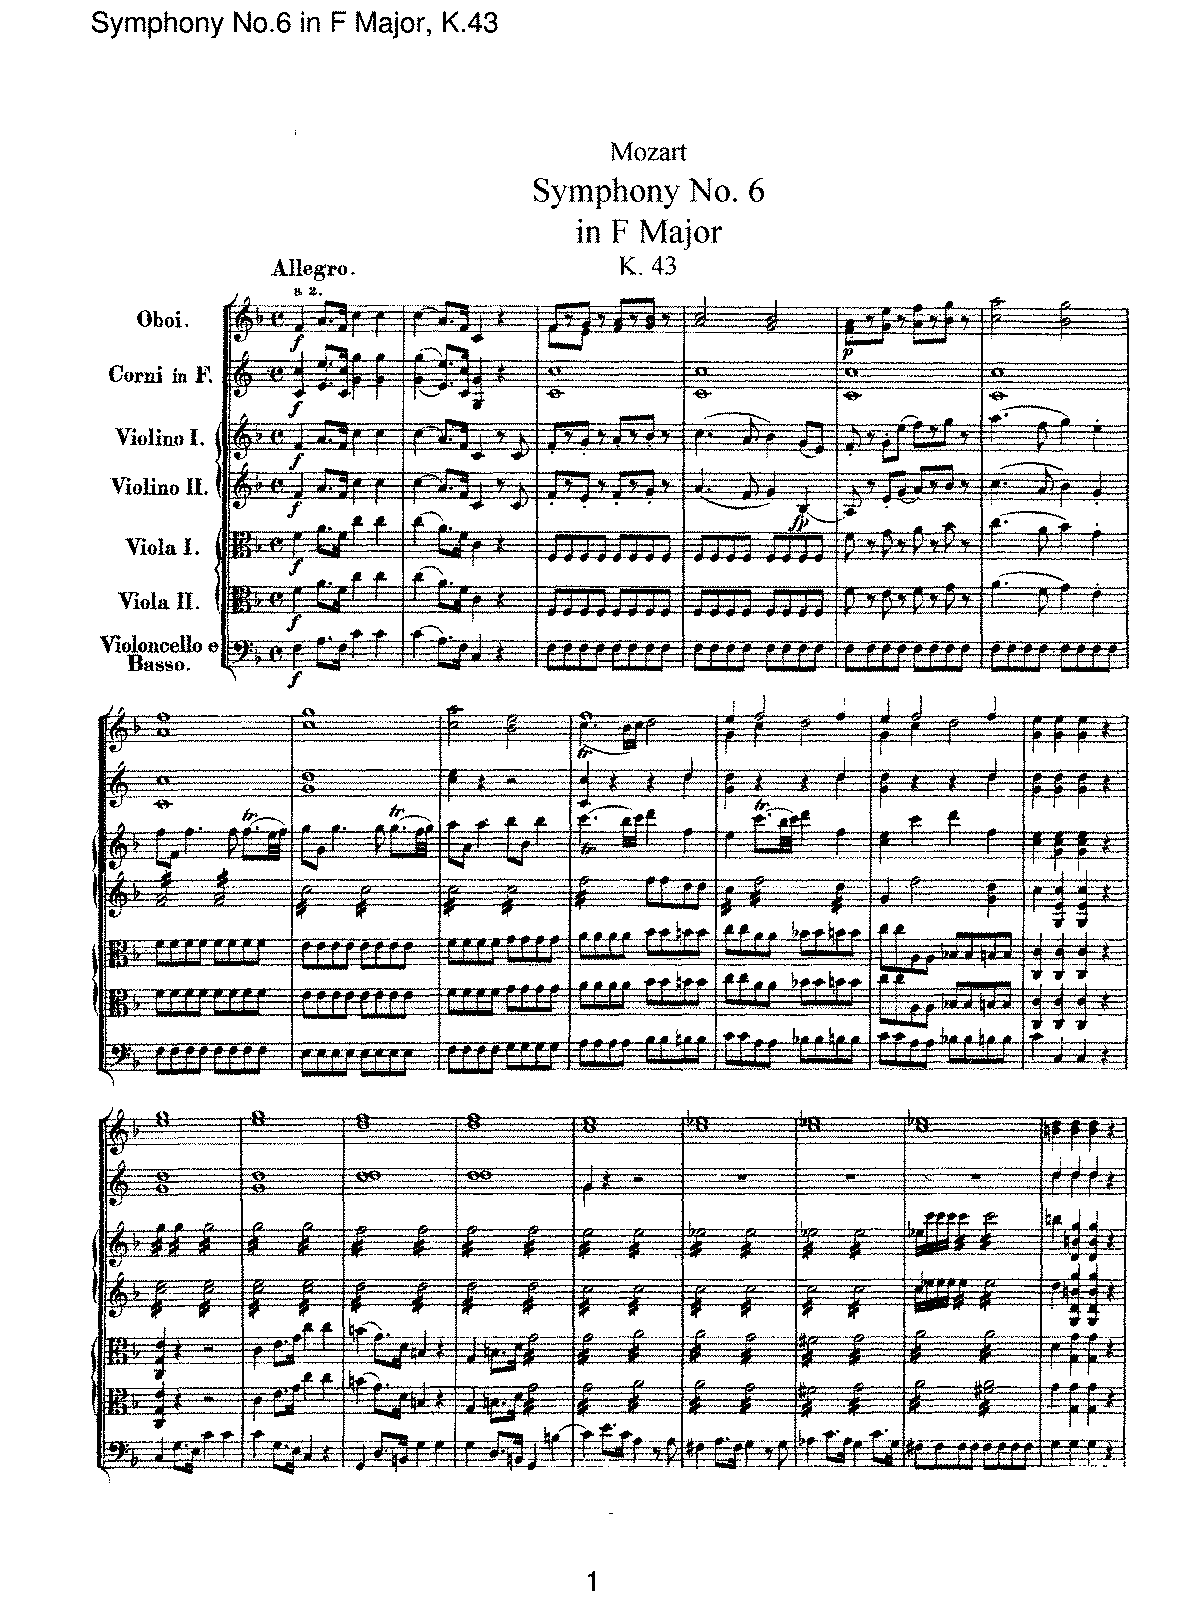 Mozart - Symphony No 06 in F Major, K43.pdf